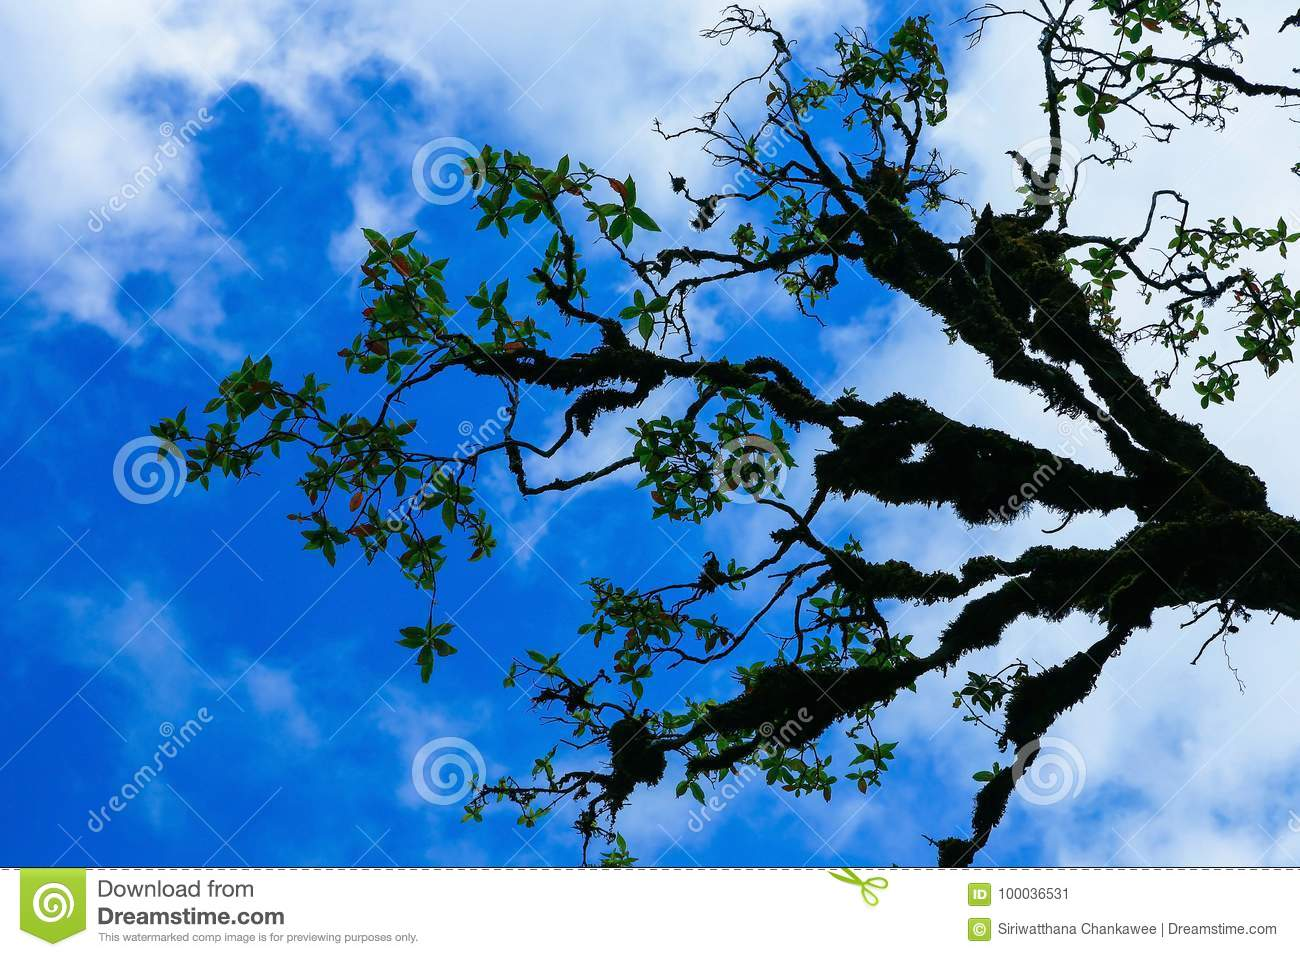 Branch of Tree coverd with moss with blue sky